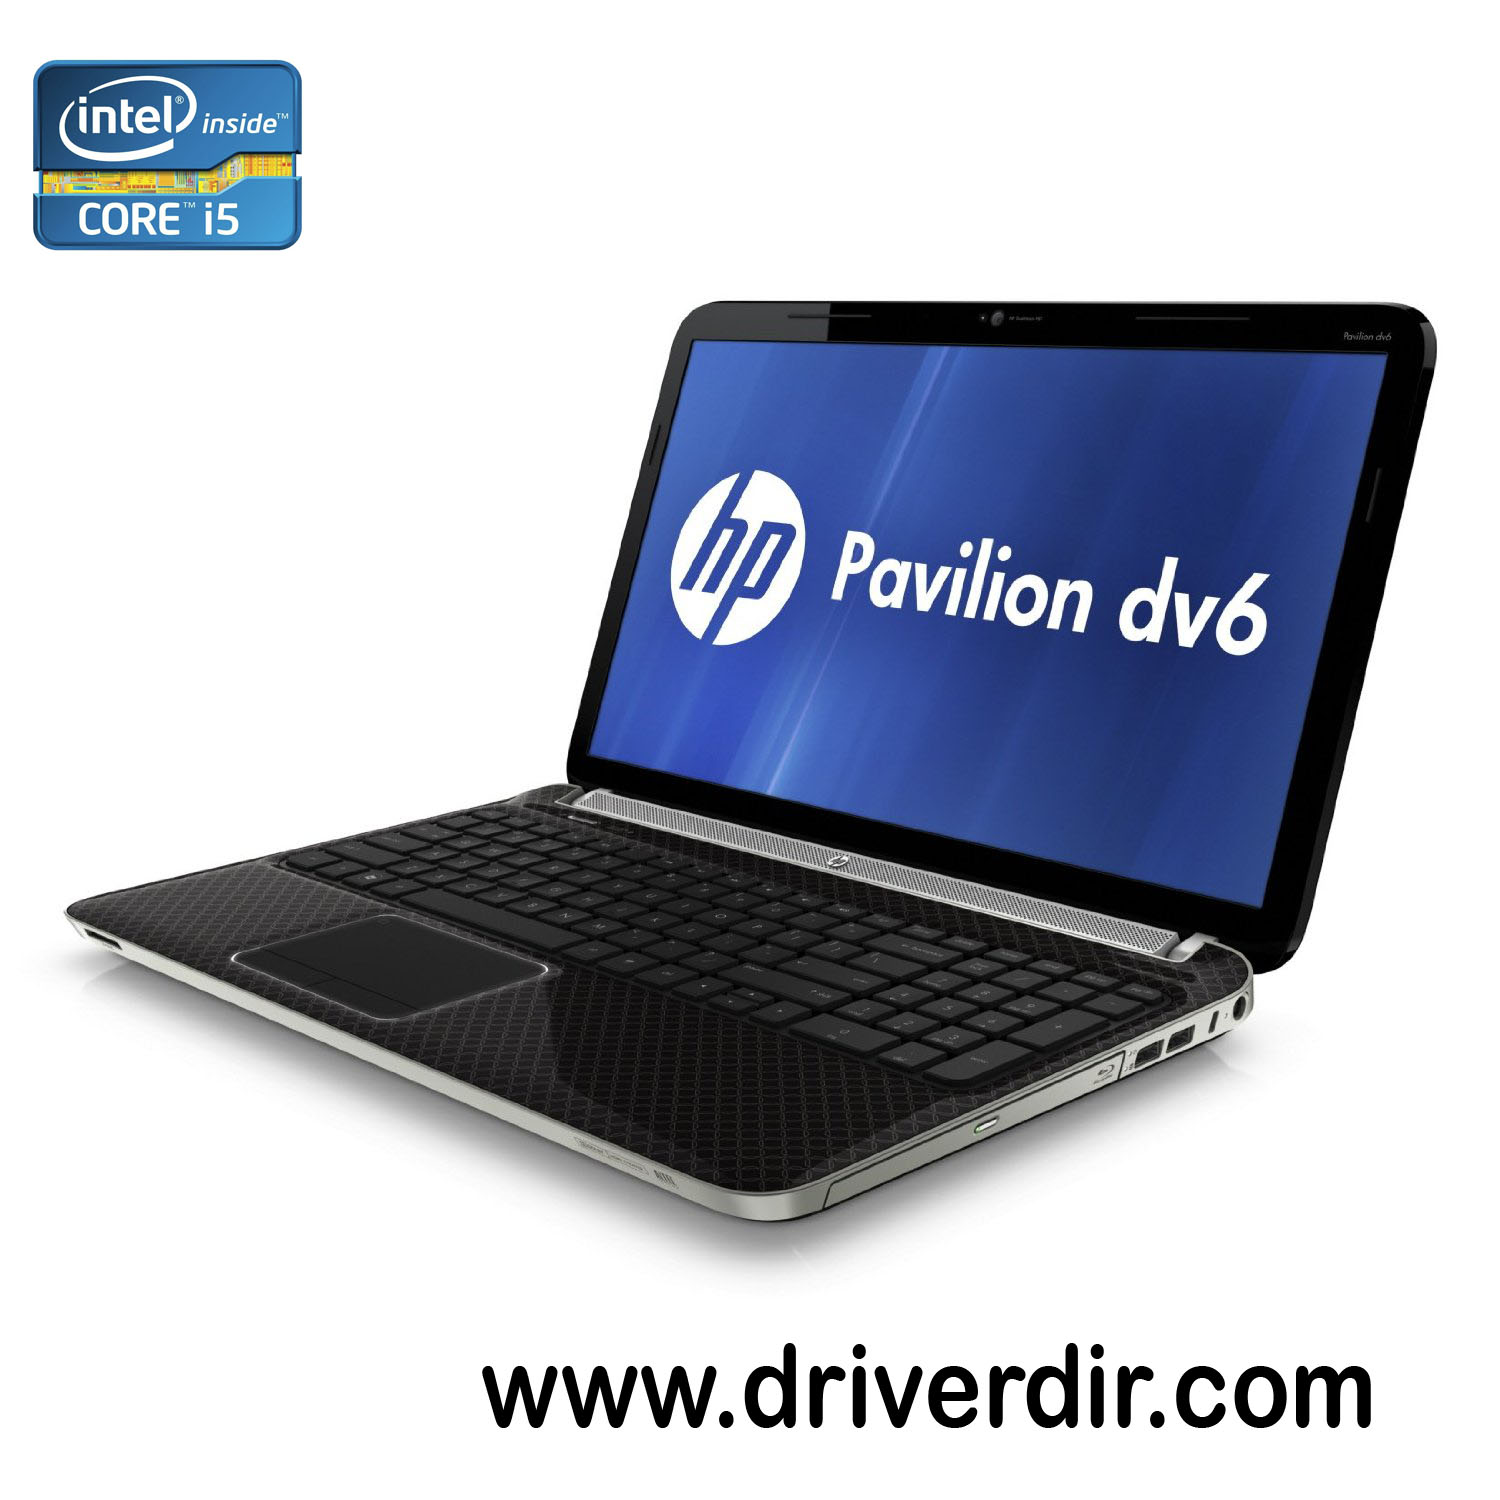 HP Pavilion Dv6 Drivers Download for Windows 7